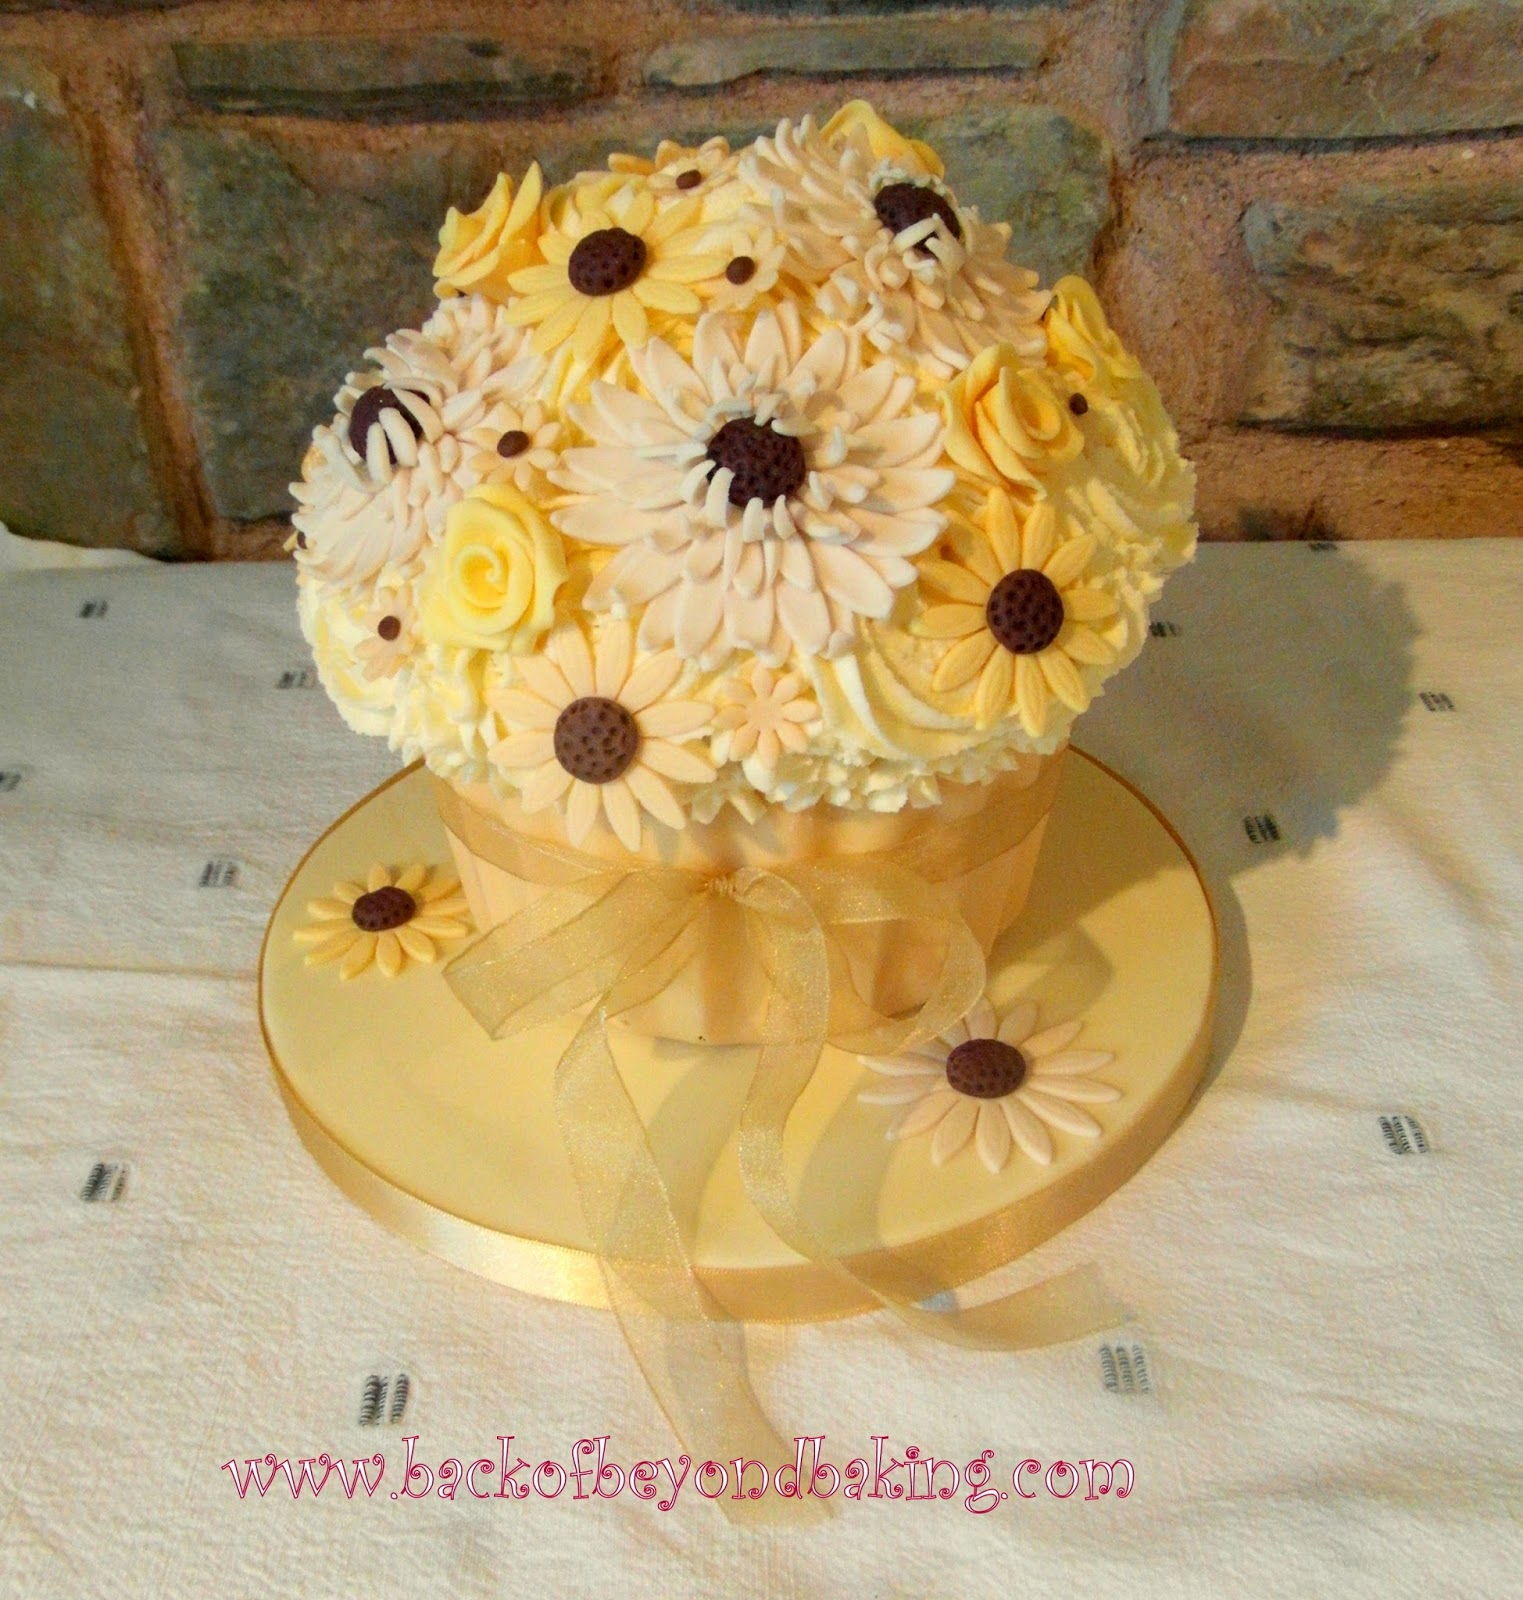 Cream and gold giant cupcake